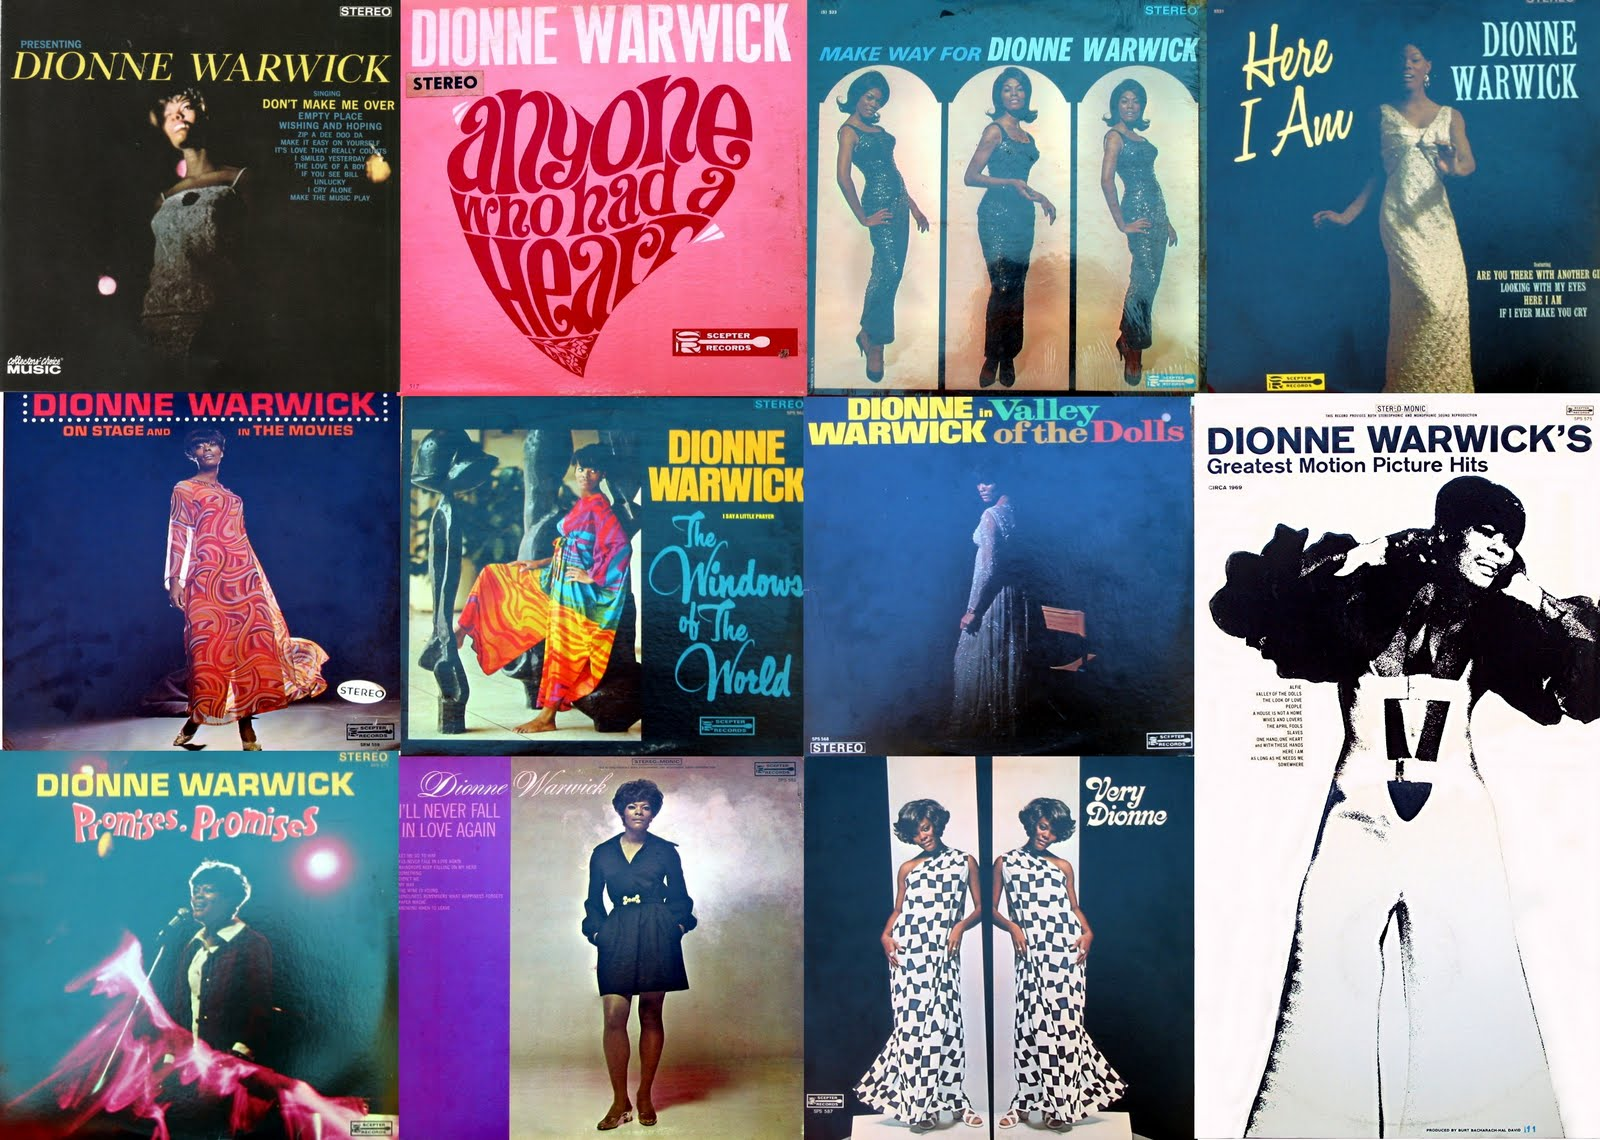 Dionne Warwick - On Stage and in the Movies - Reviews